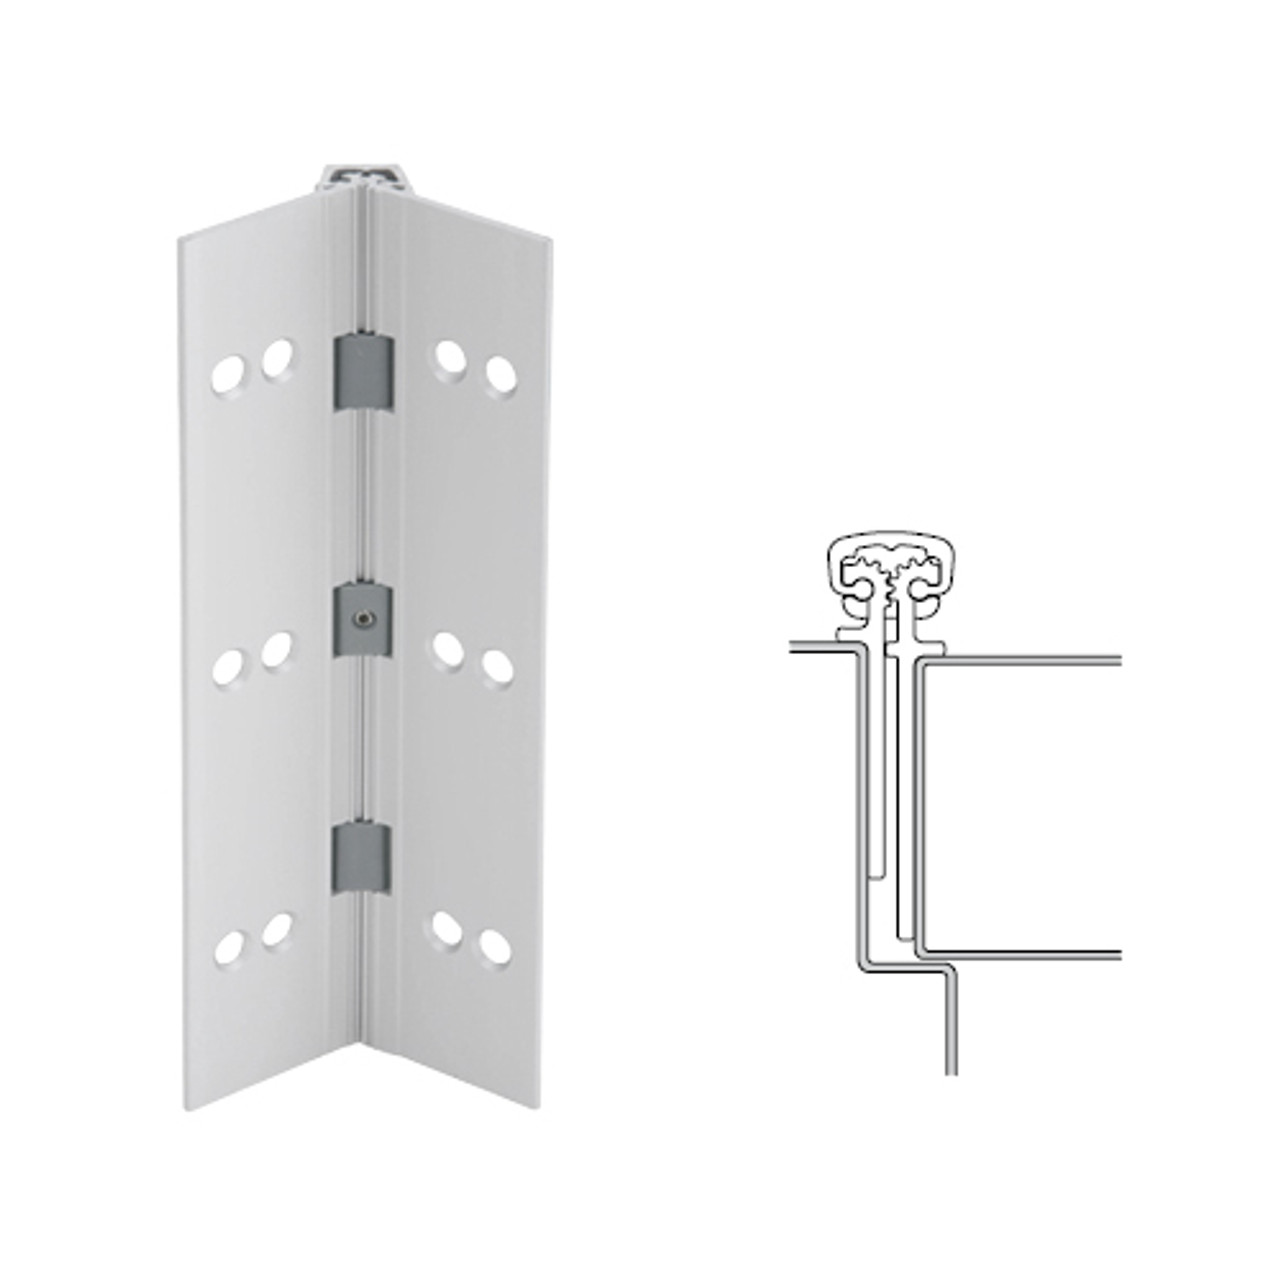 026XY-US28-95-TFWD IVES Full Mortise Continuous Geared Hinges with Thread Forming Screws in Satin Aluminum